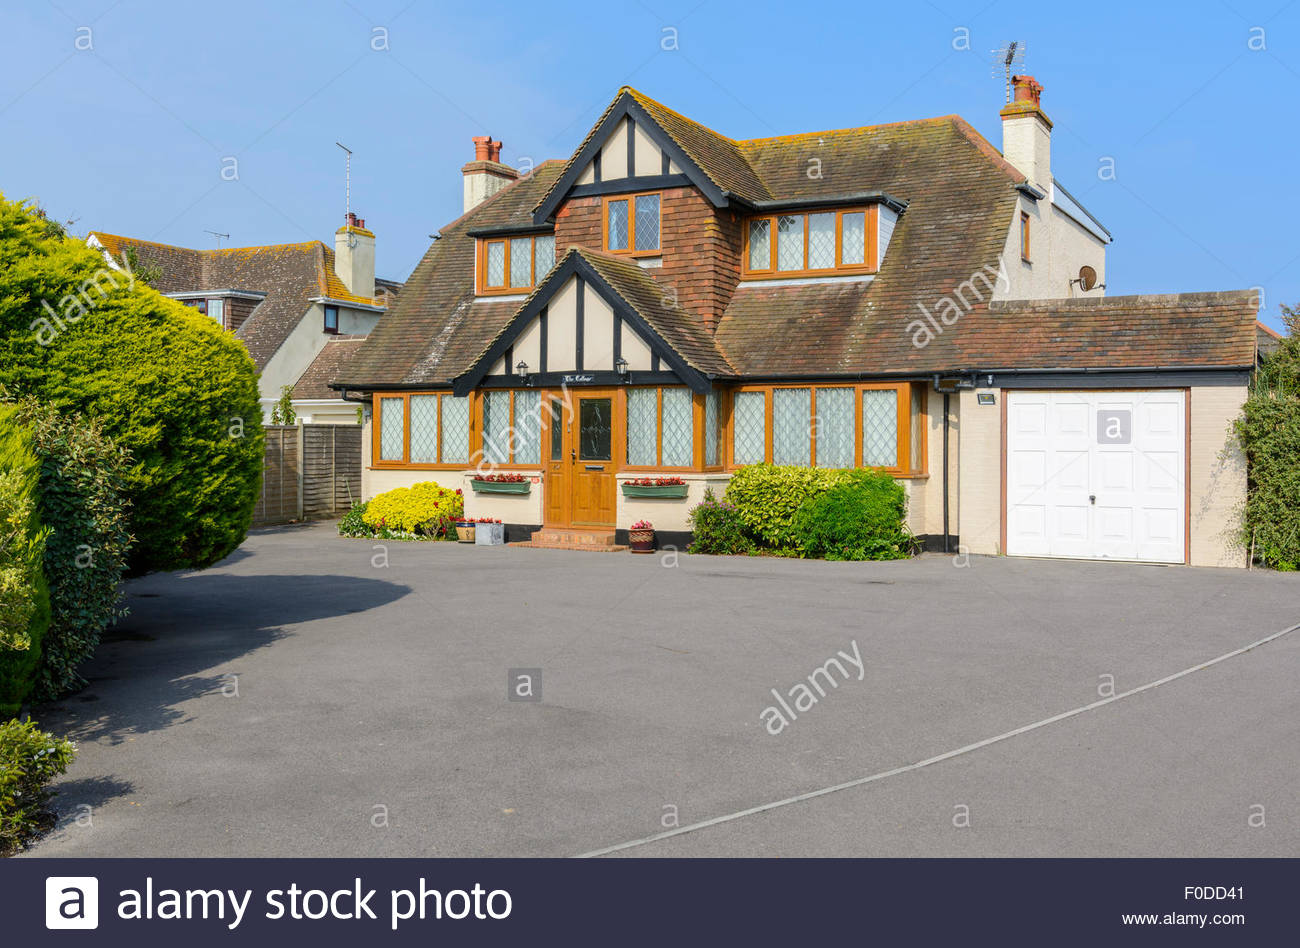 Large detached house with a garage and big driveway in West Sussex, England, UK. - Stock Image